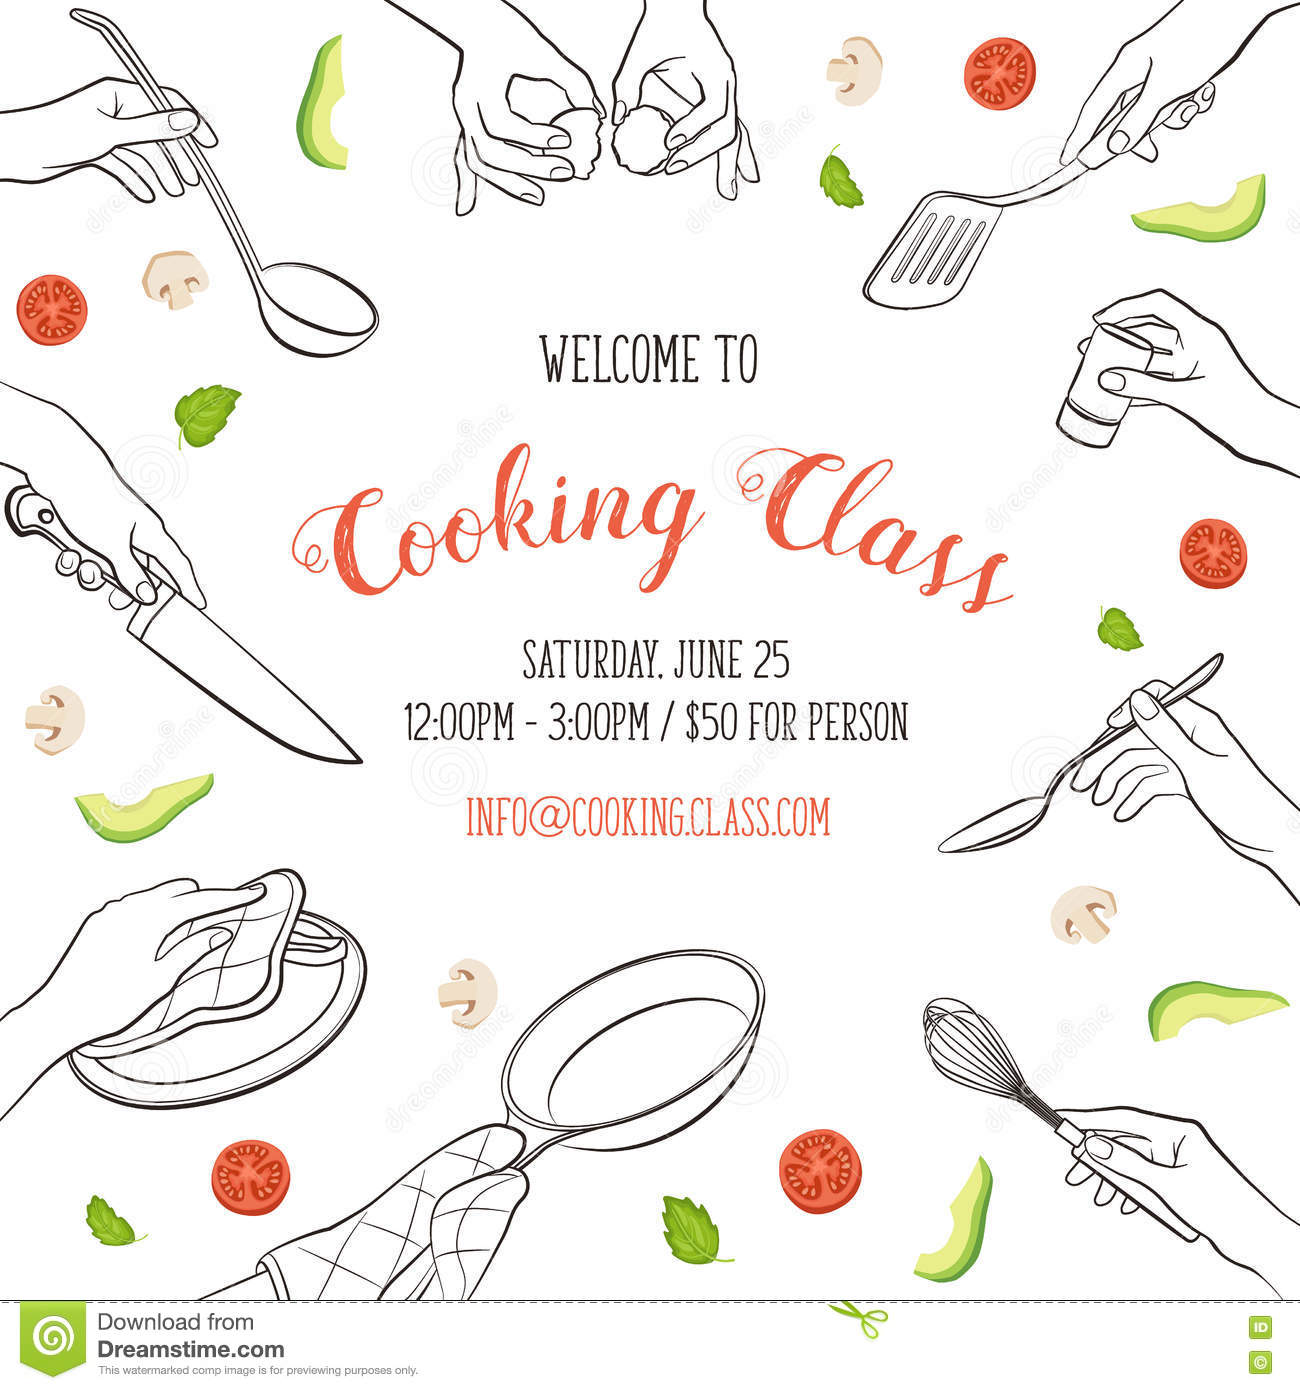 Cooking Certificate Template Delectable Cooking Class Template Stock Vectorillustration Of Restaurant .